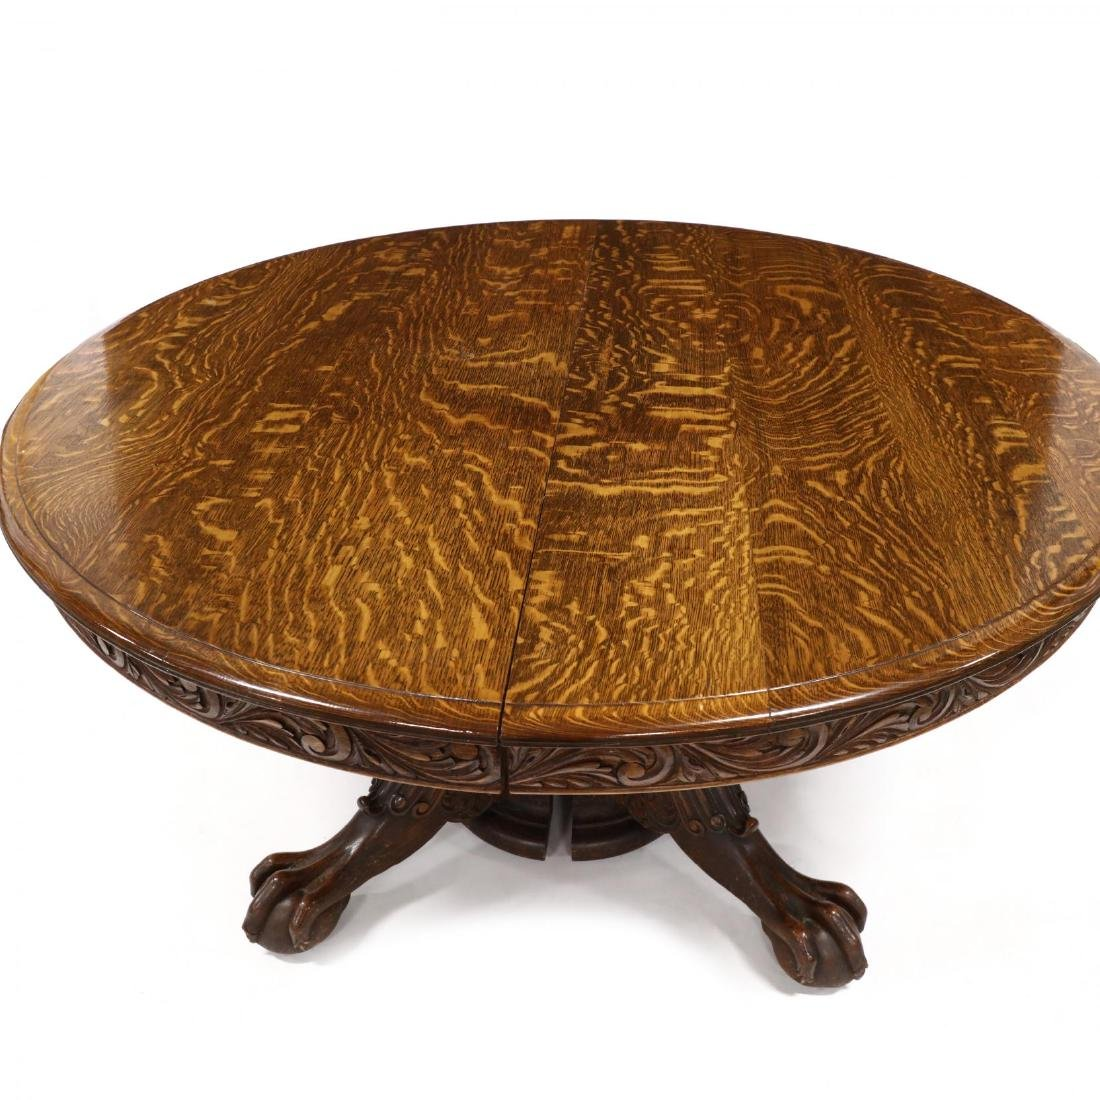 Edwardian Carved Oak Expansion Dining Table - 2